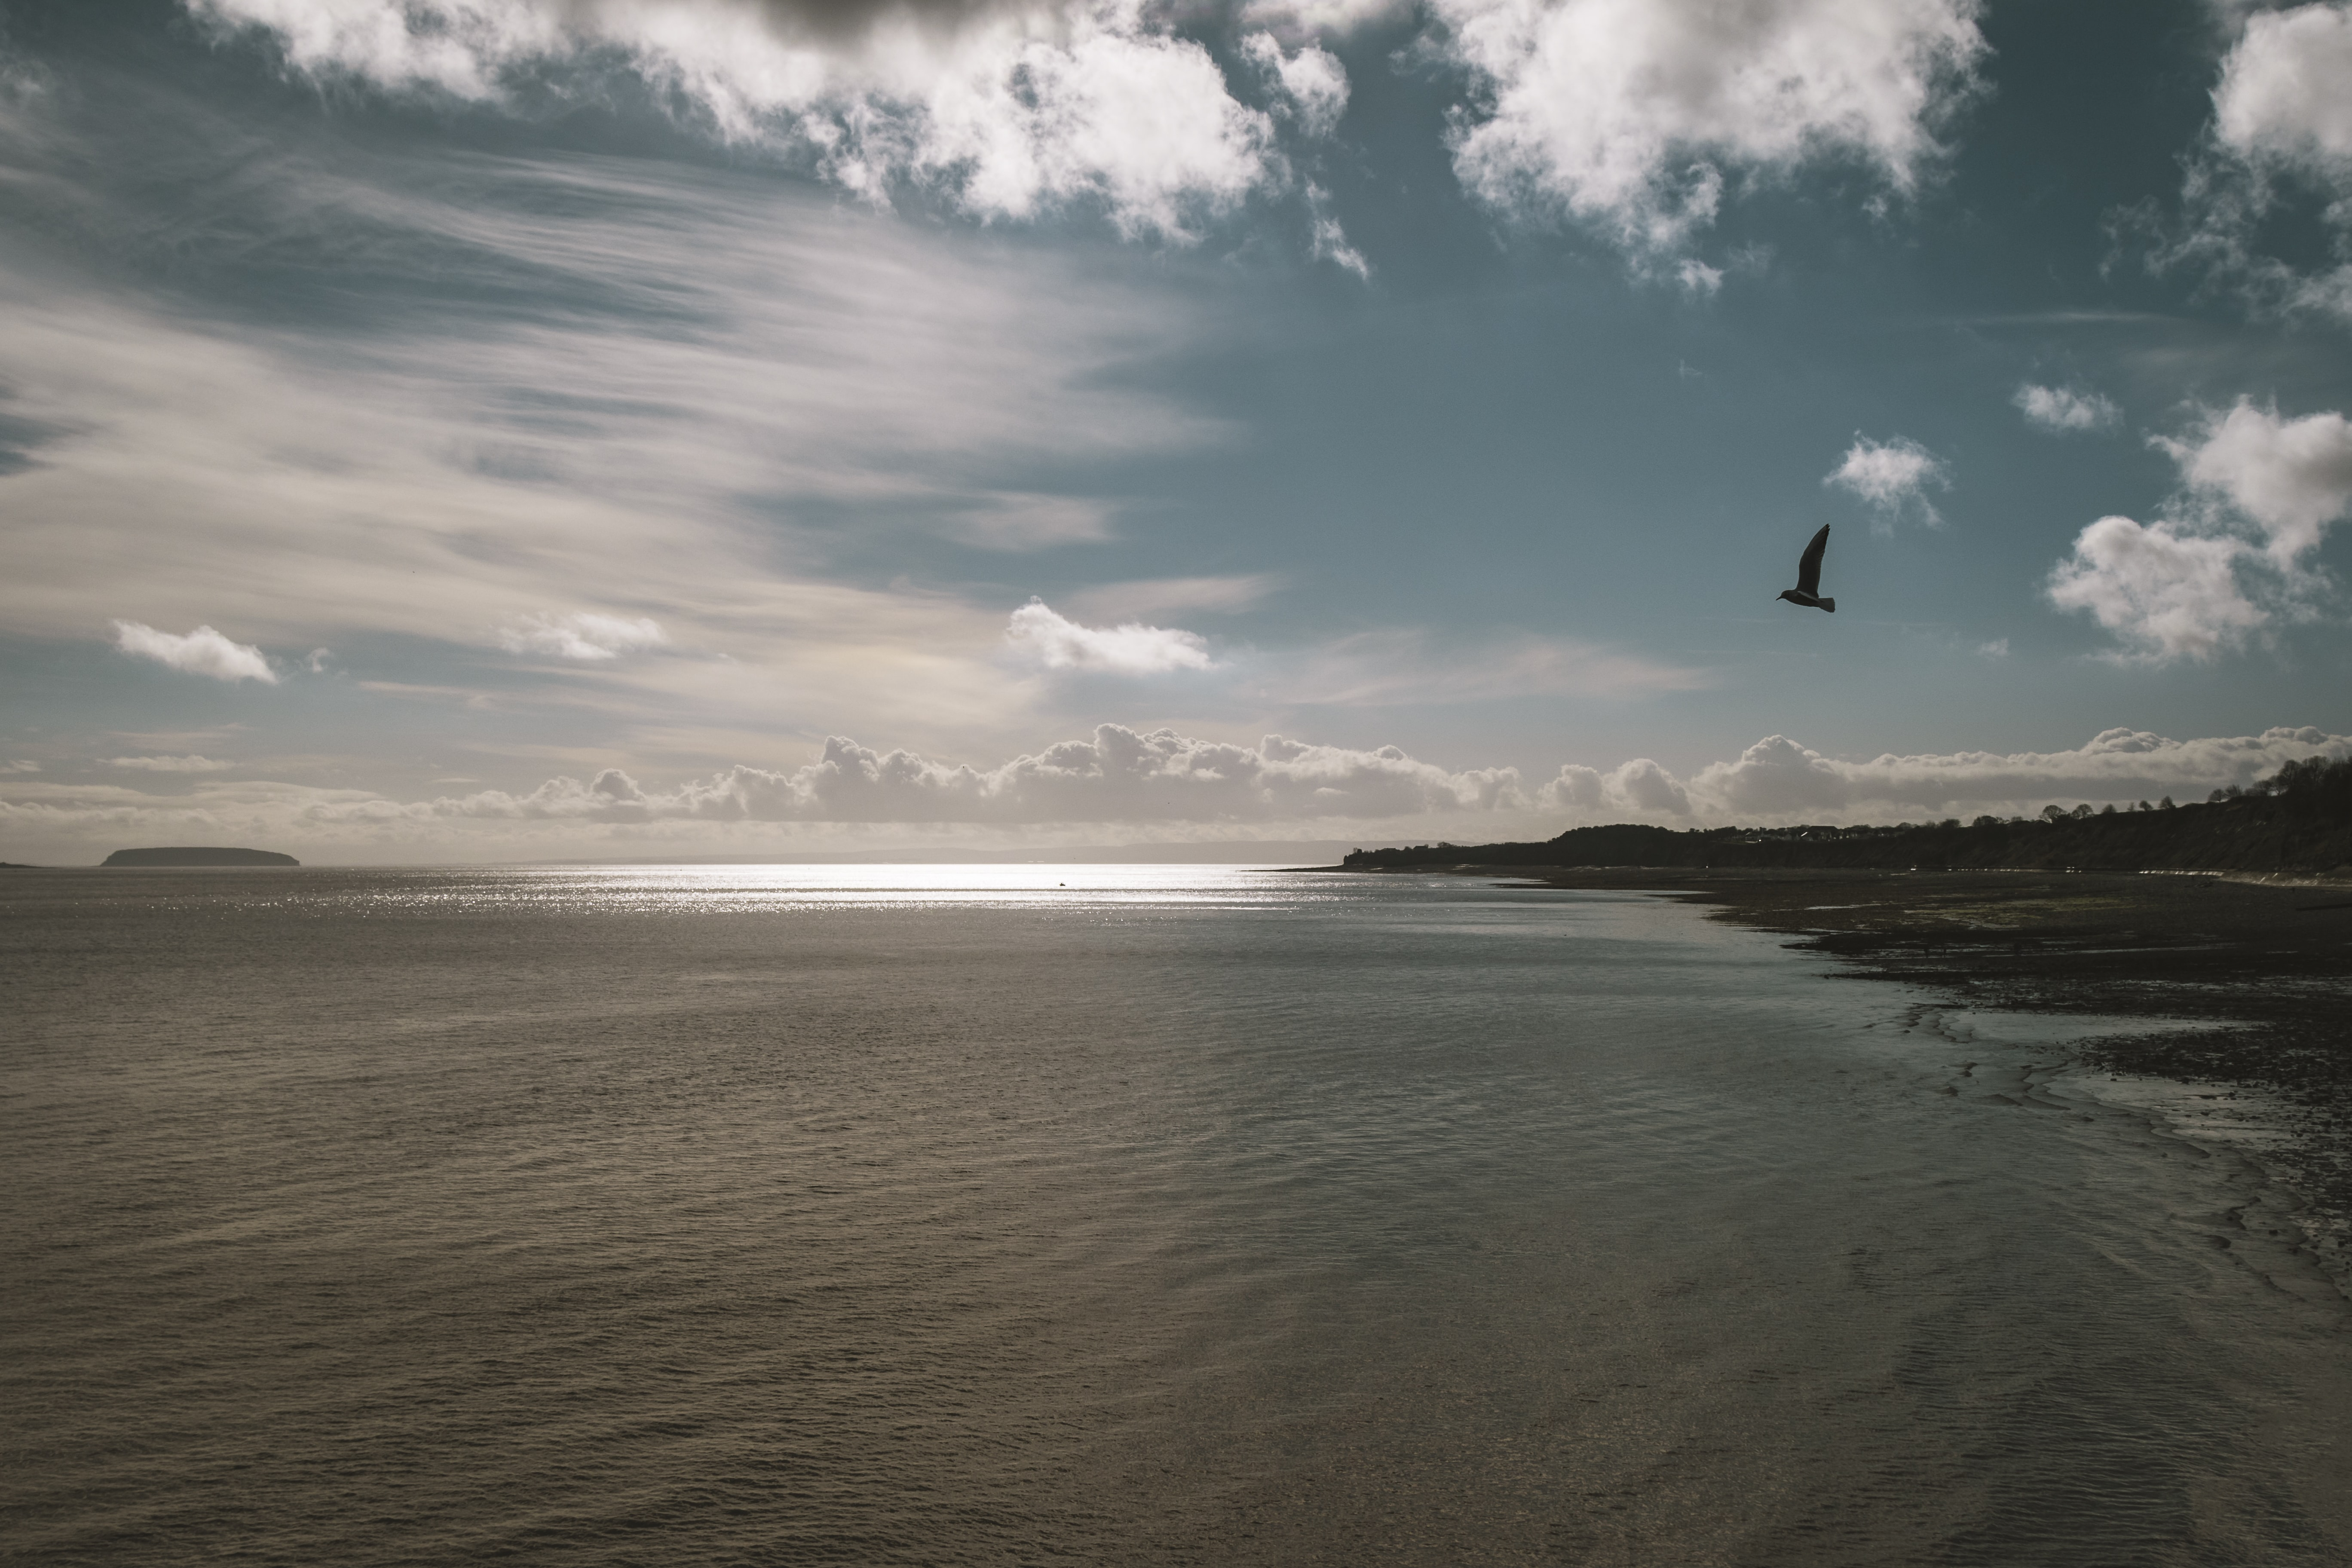 photograph of bird flying over body of water